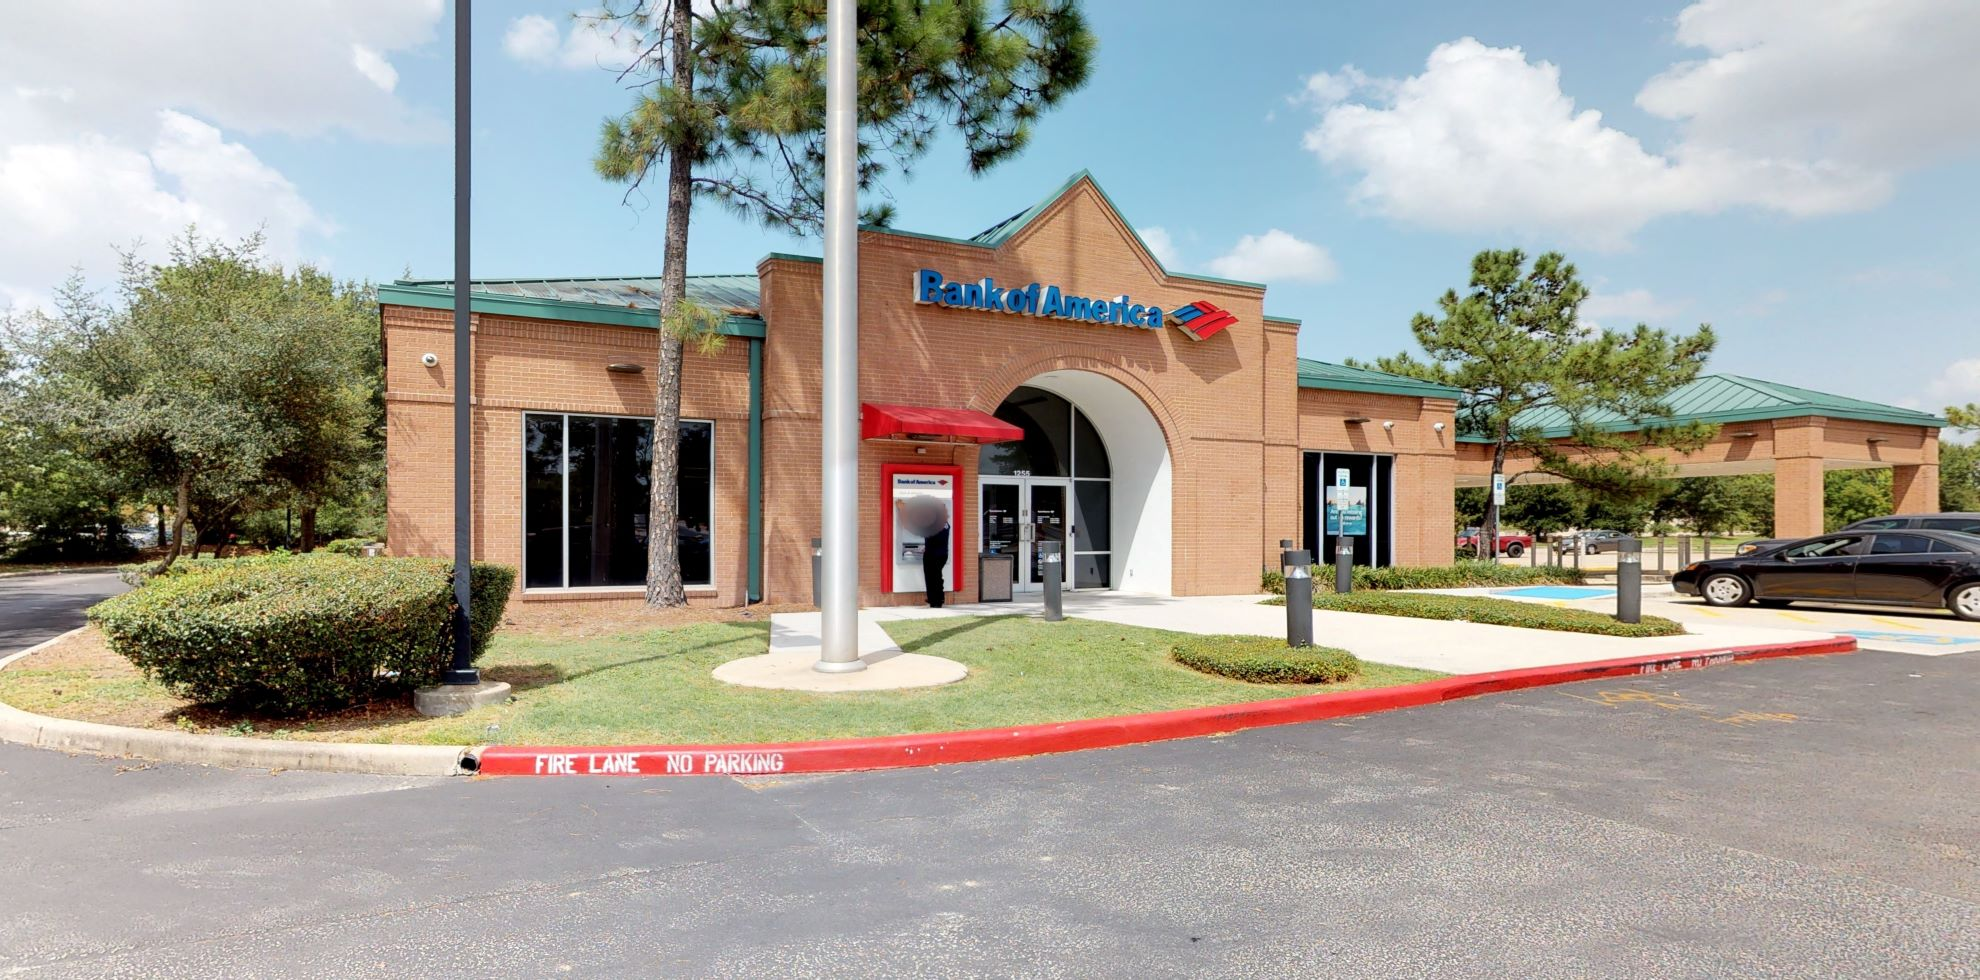 Bank of America financial center with drive-thru ATM | 1255 Lake Woodlands Dr, The Woodlands, TX 77380